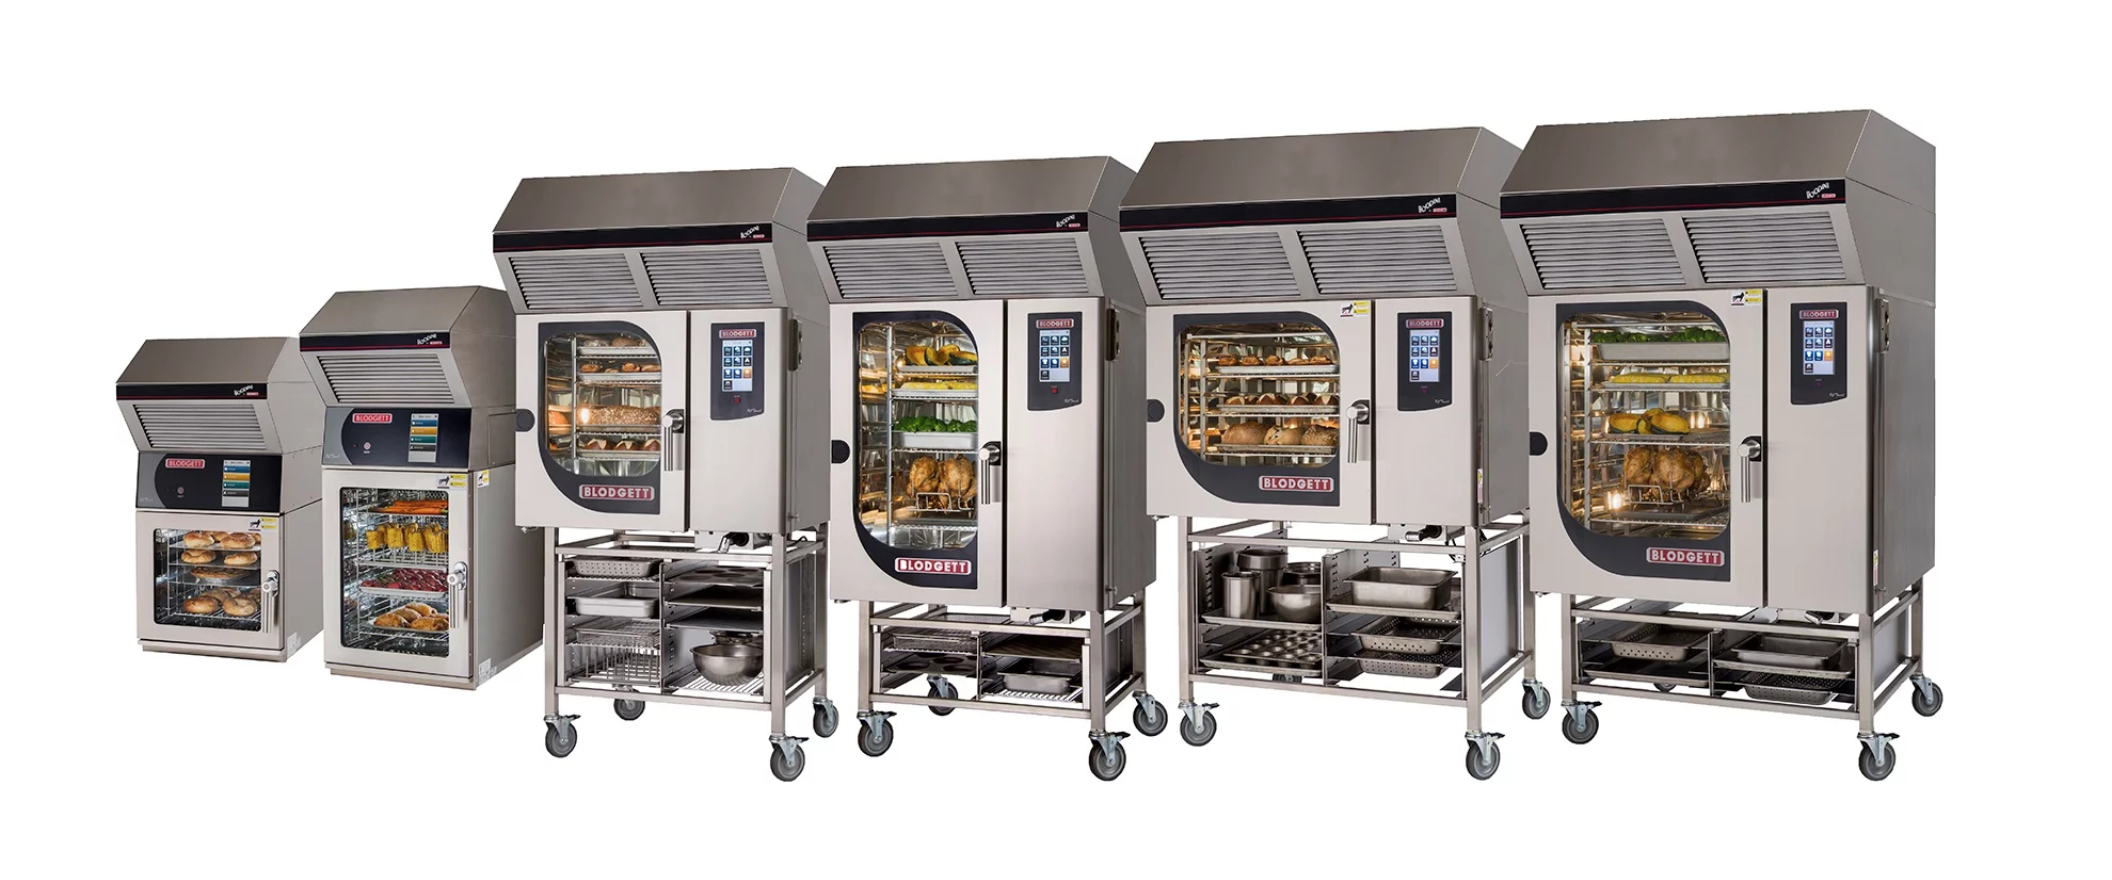 Ventless Cooking Resources for Canadian Foodservice Operators